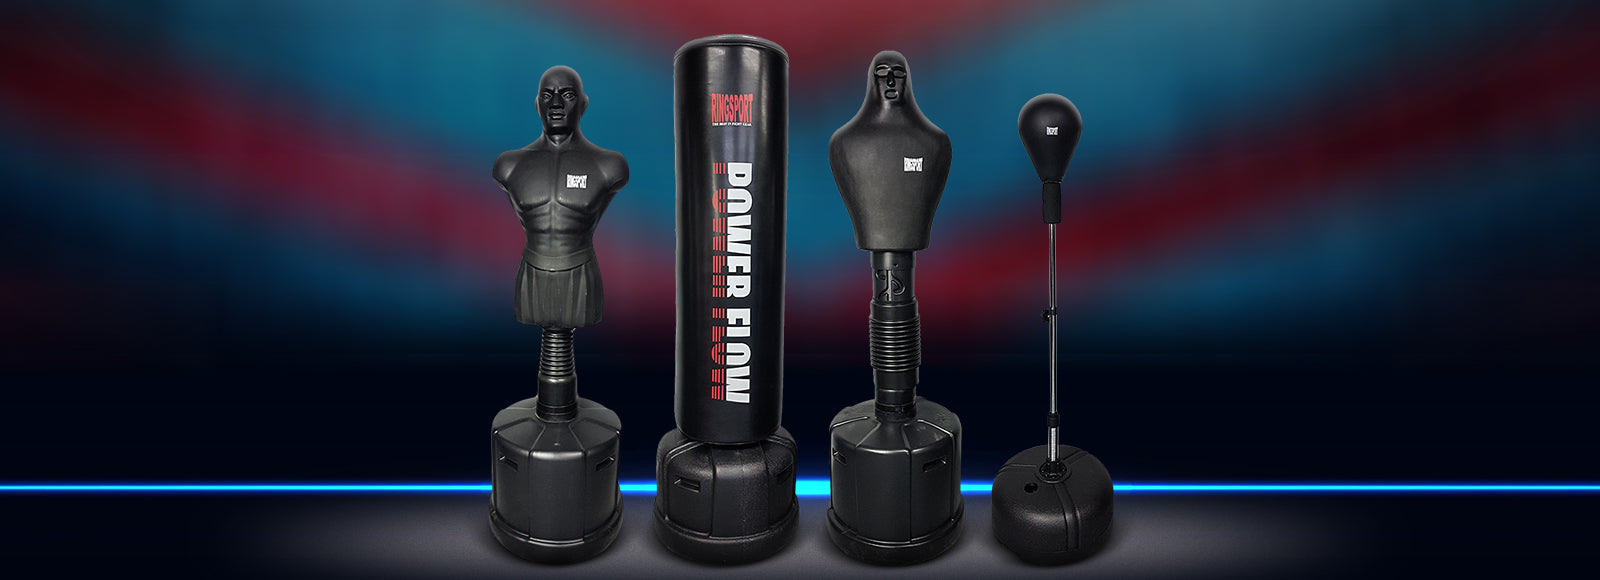 Free standing punching bags and boxing gear